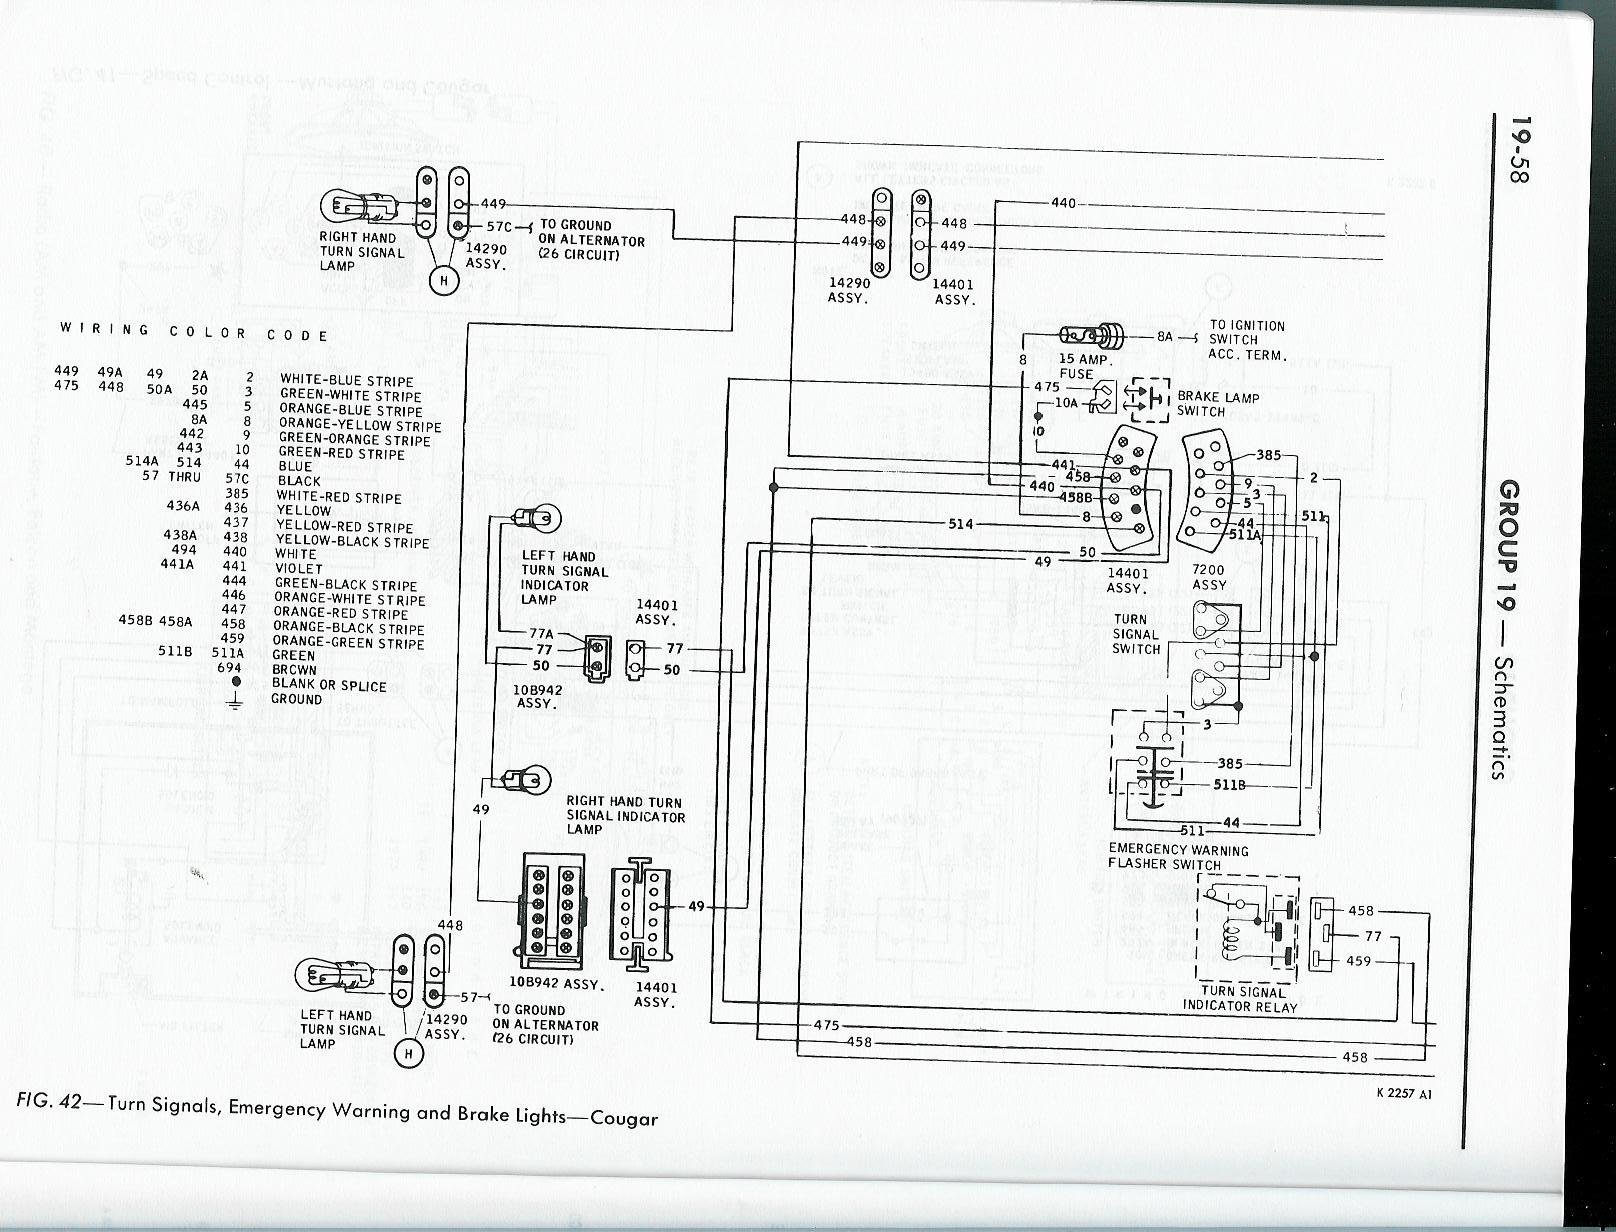 65 Mustang Turn Signal Wiring Diagram